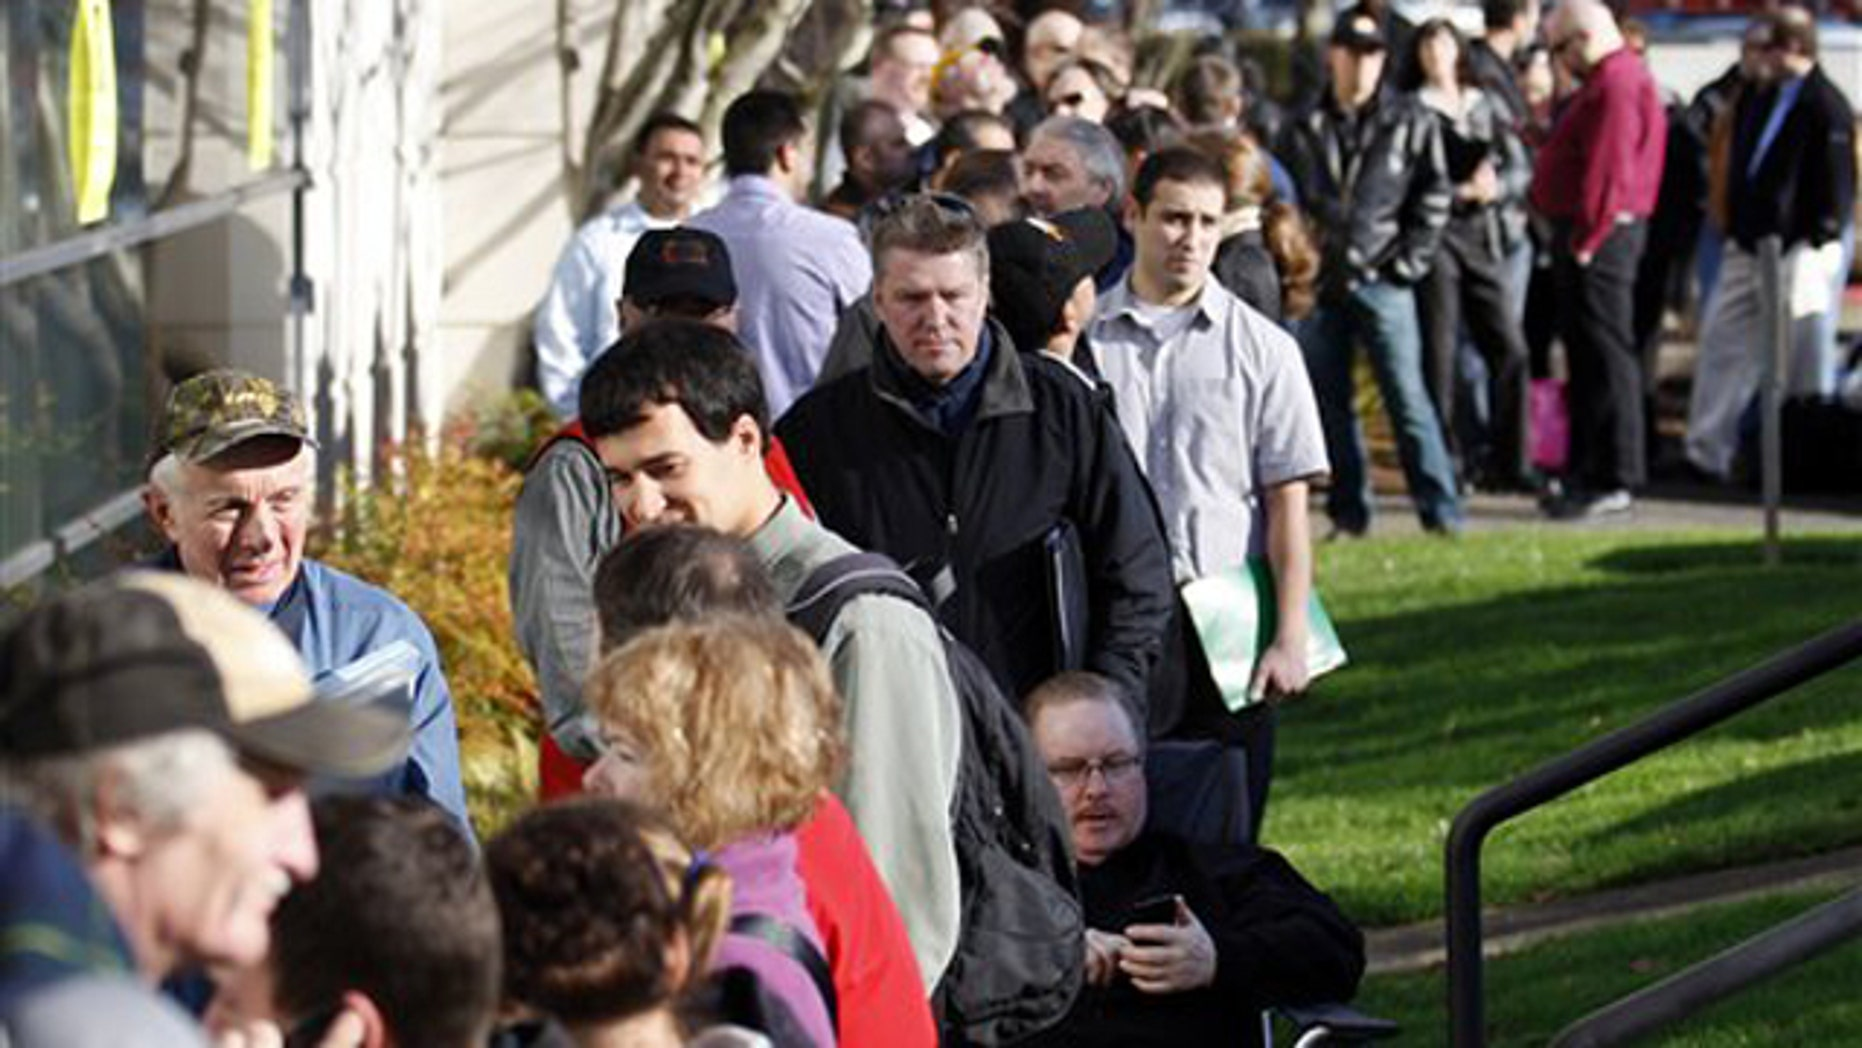 Feb. 2, 2012: People wait in line during a job fair for Home Depot at the WorkSource Oregon in Tigard, Ore.